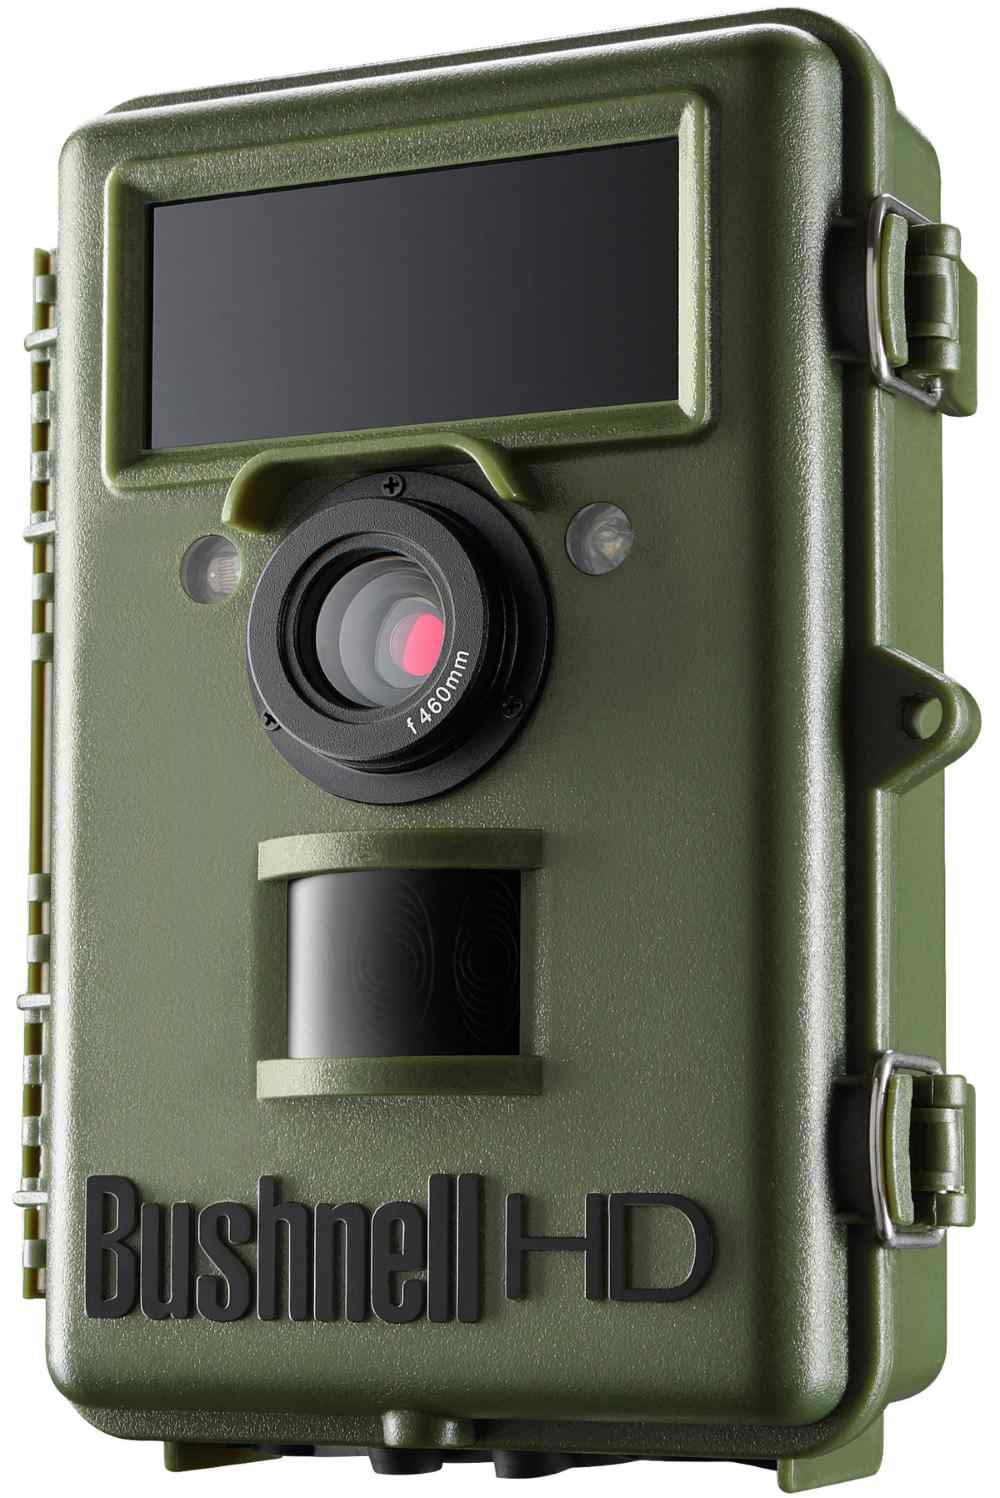 Bushnell NatureView Trophy Trail Camera - 3 5 - 14MP